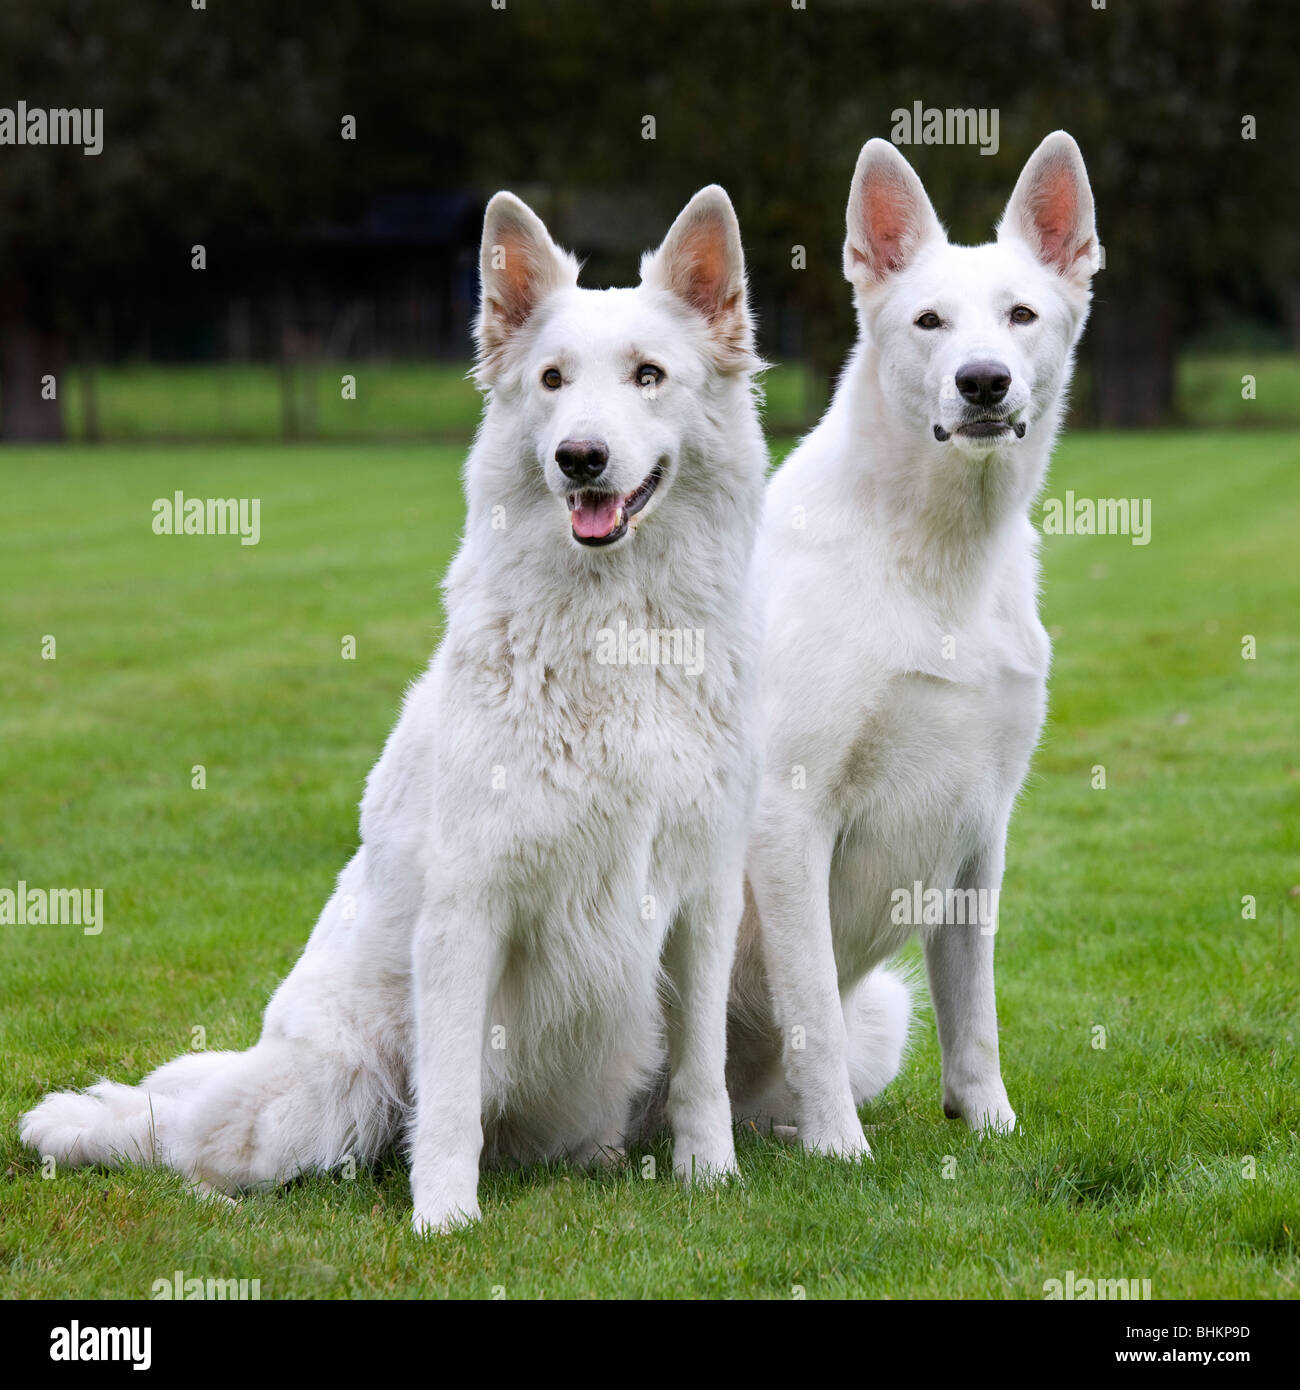 Deux Berger Blanc Suisse chiens (Canis lupus familiaris) in garden Photo Stock